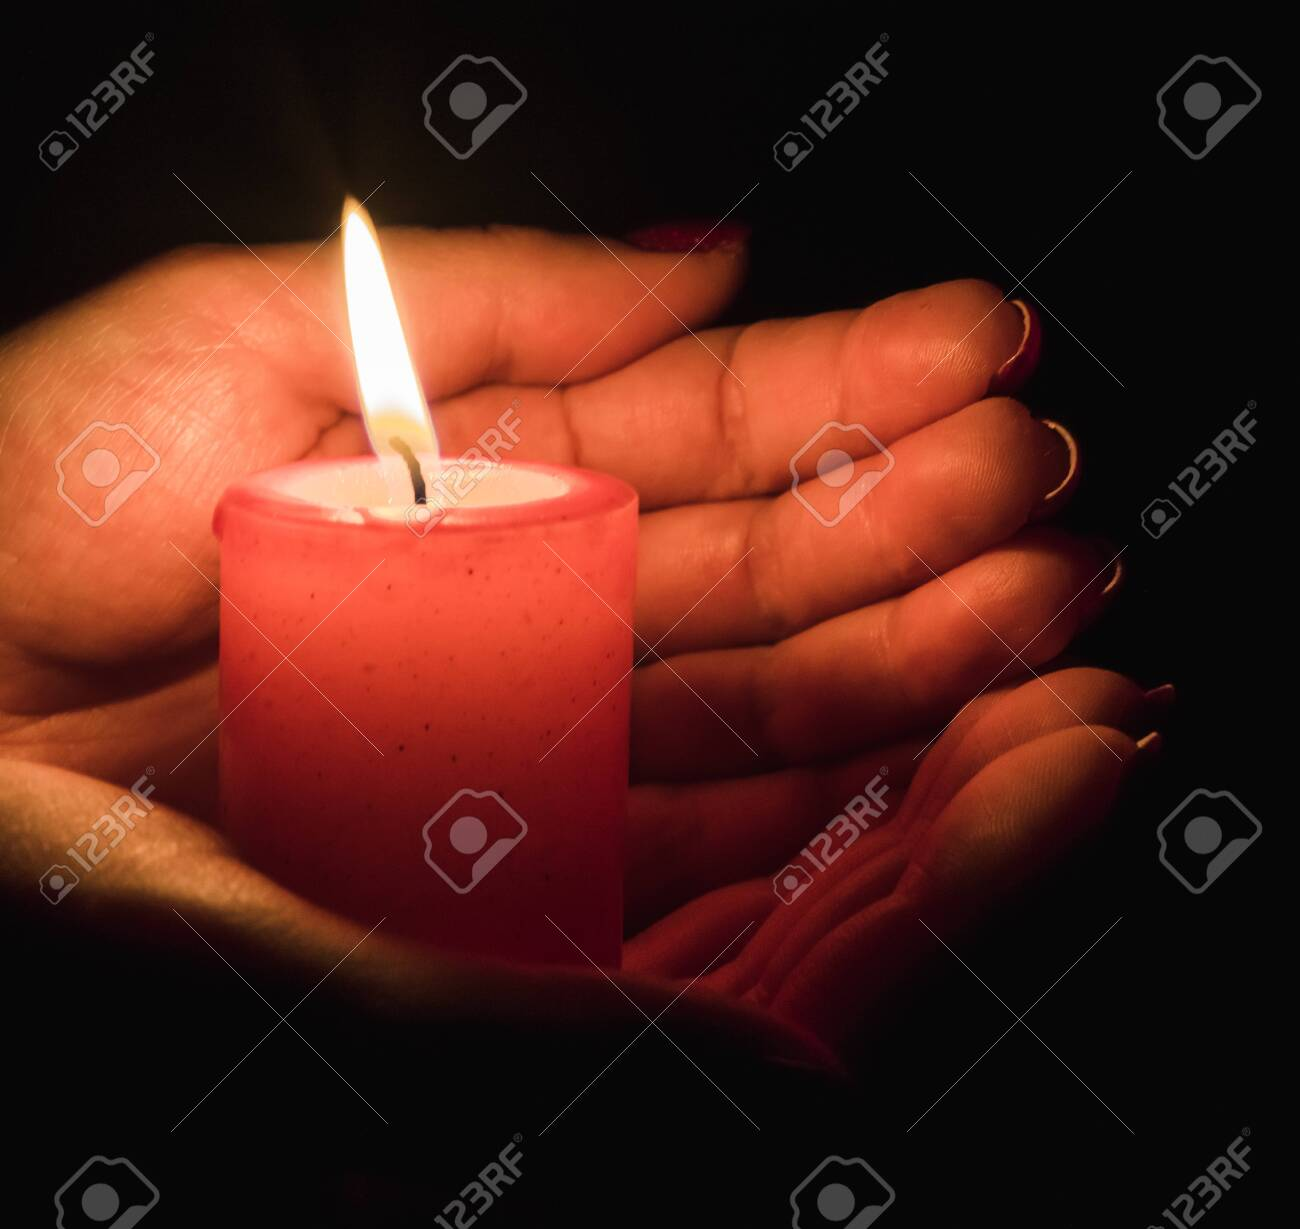 Female hands holding a burning candle in the dark - 137930335